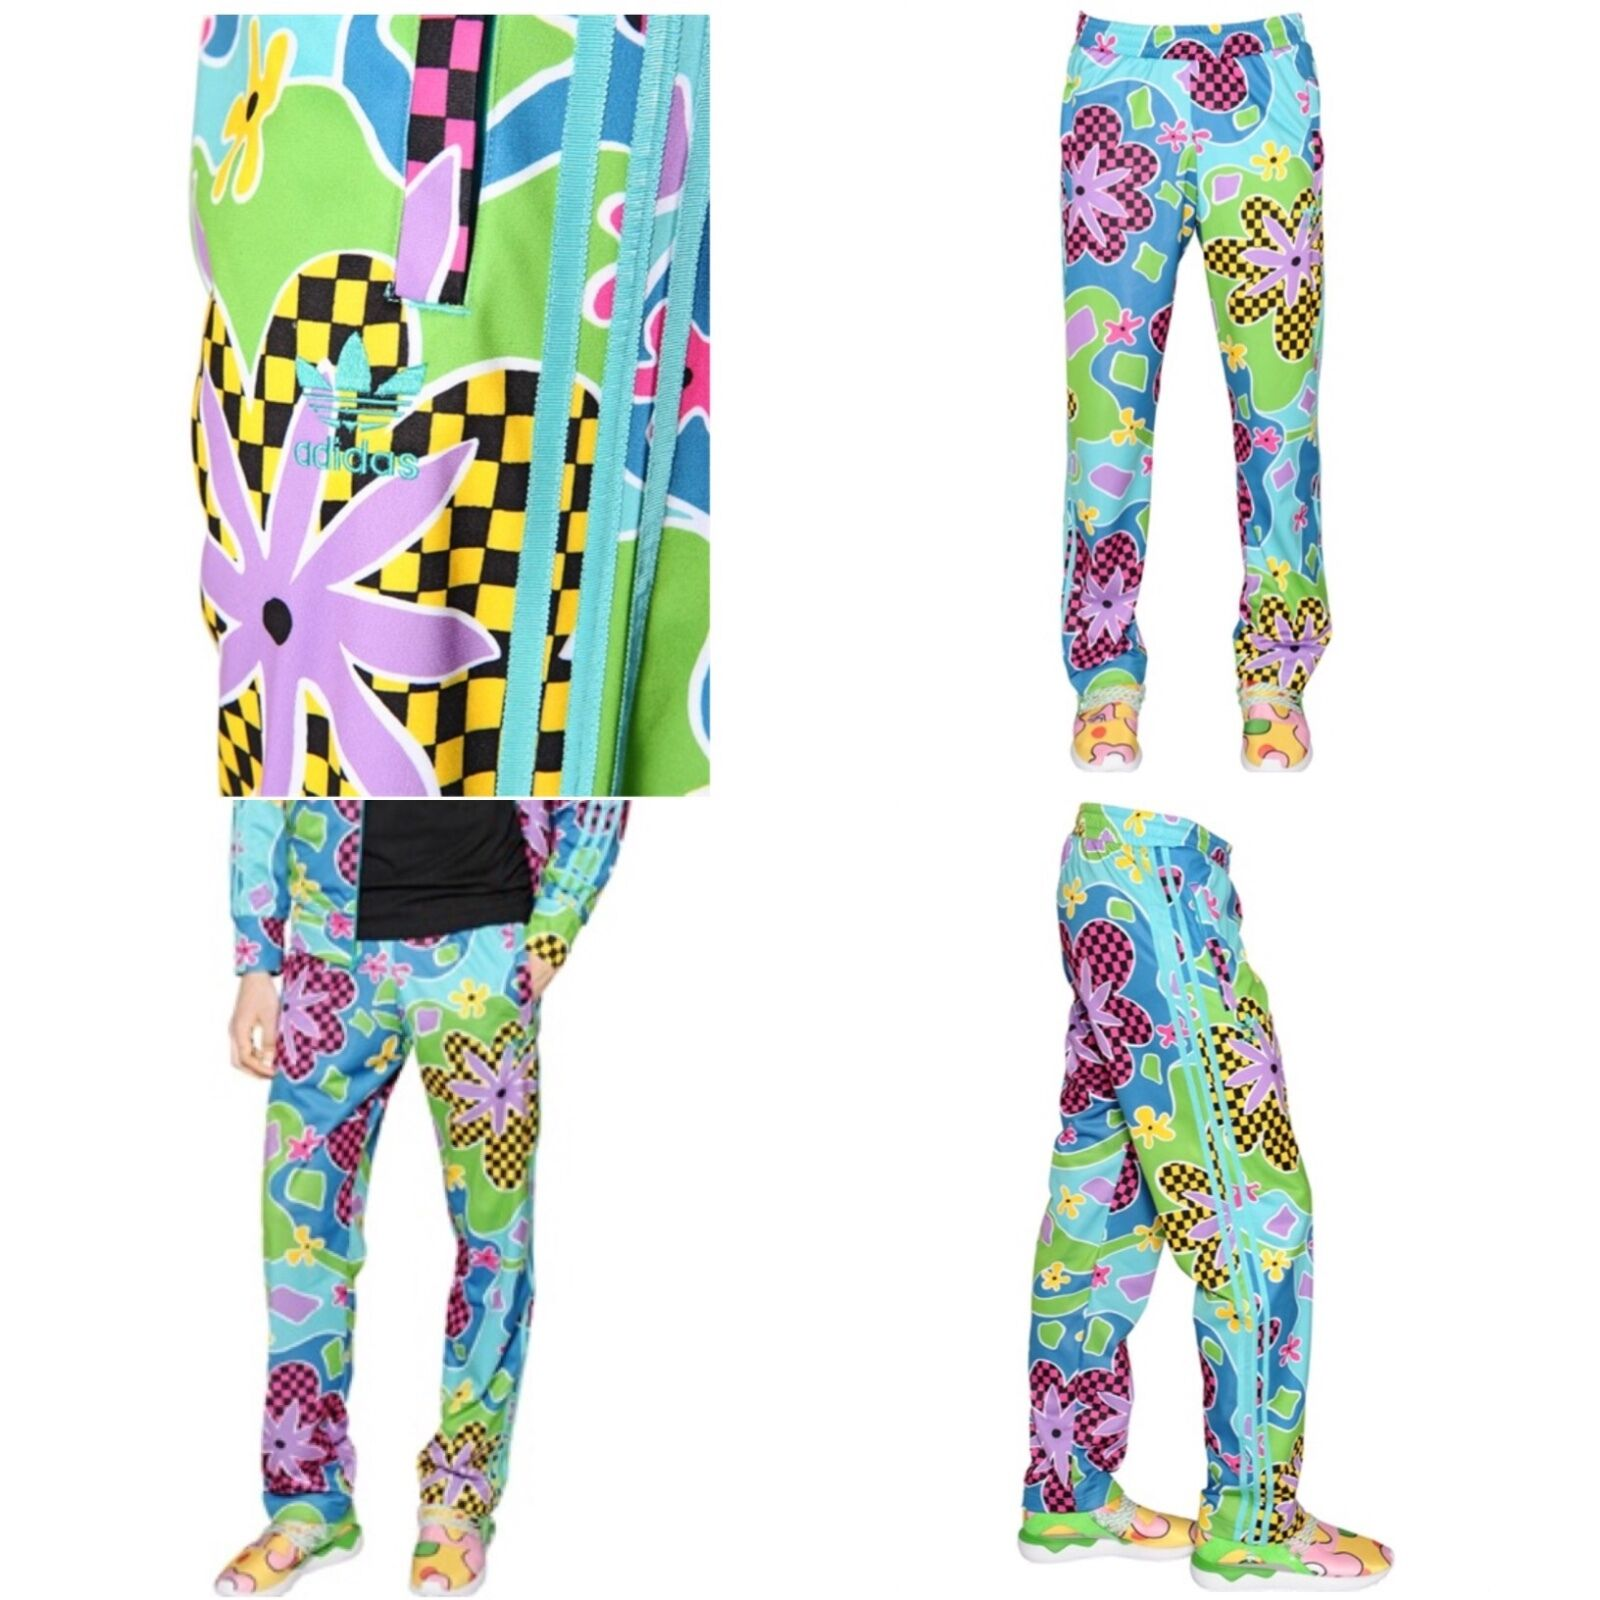 JEREMY SCOTT x ADIDAS Psychedelic Floral Shellsuit colorful Pants RARE  NEW